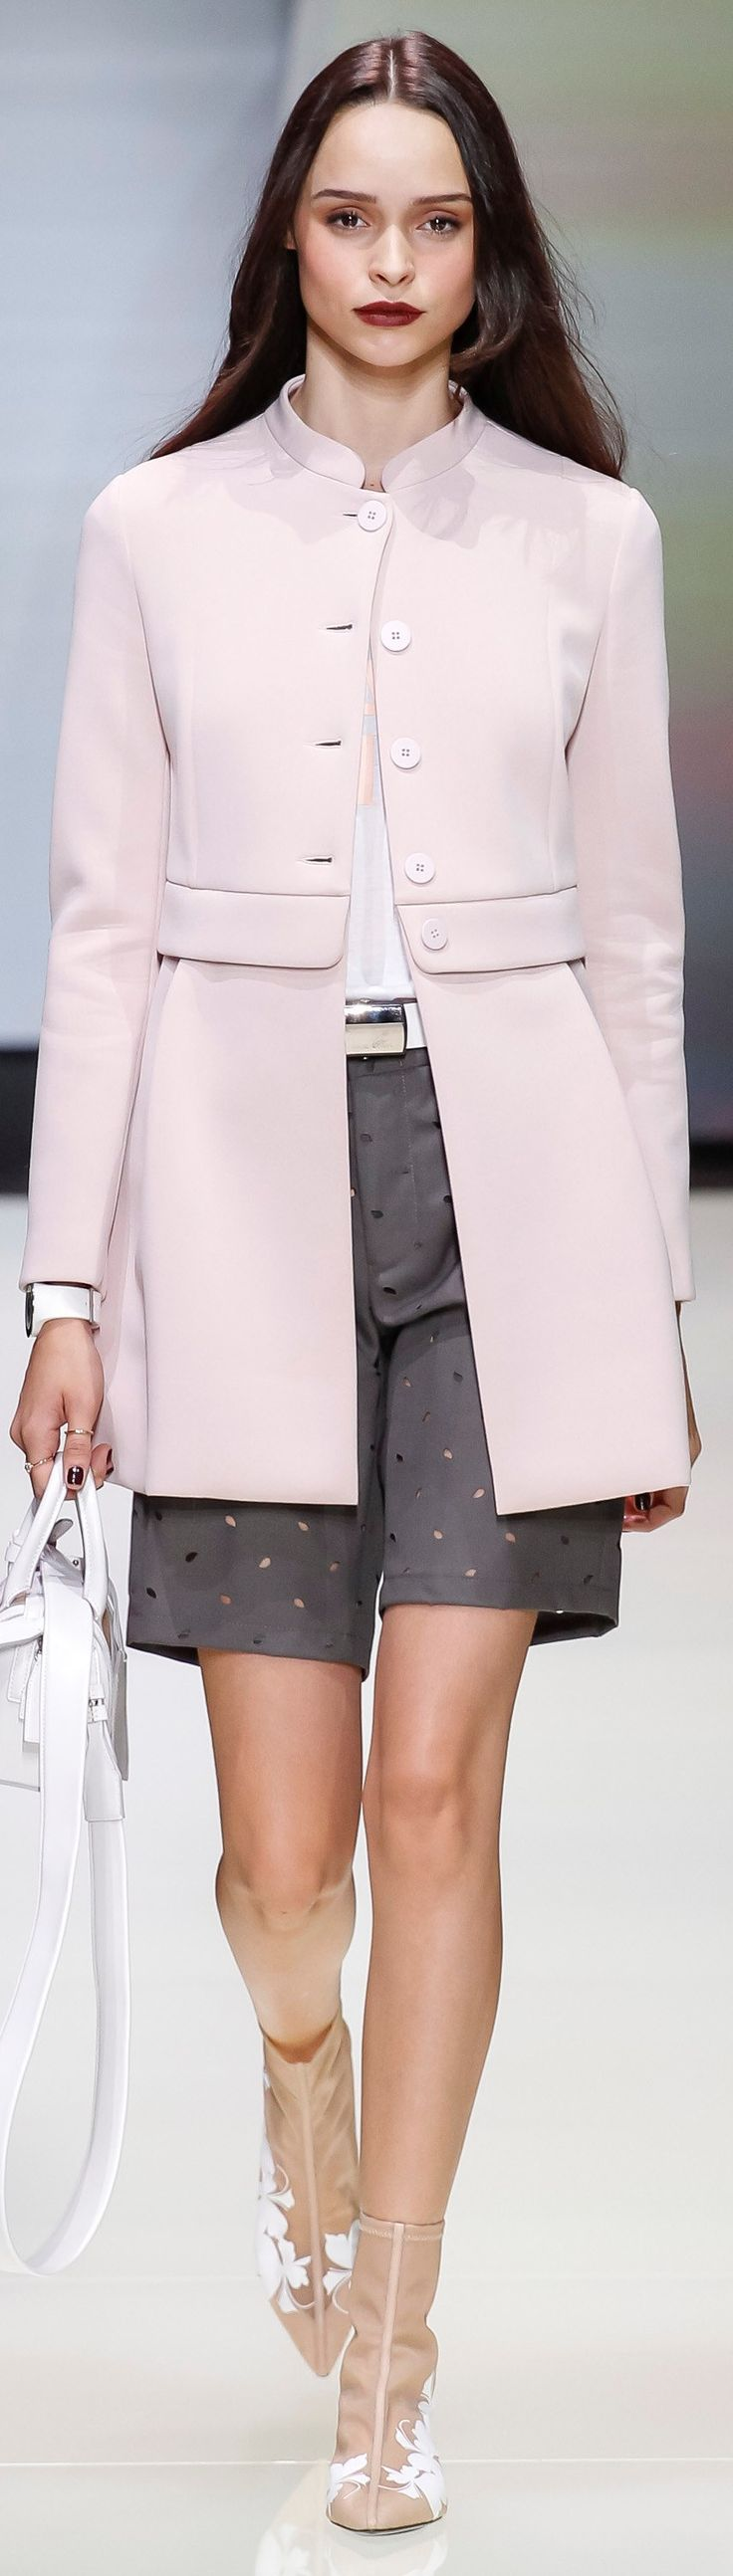 Emporio Armani SPRING 2016 READY-TO-WEAR